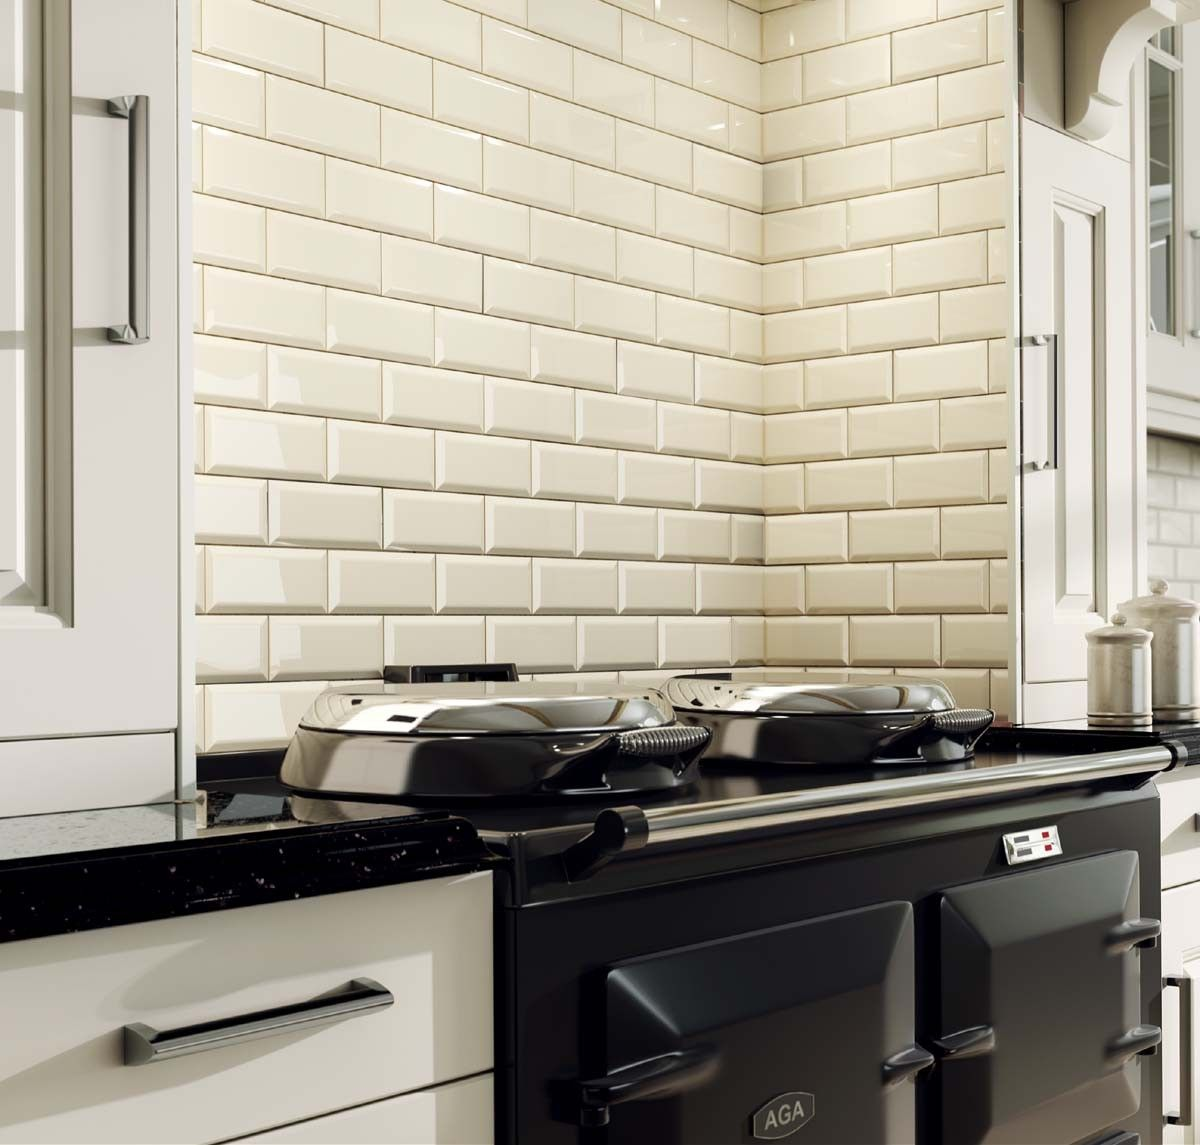 Cream Gloss Kitchen Tile Bisel Crema Brillo Metro Tiles Google Keresacs Home Sweet Home